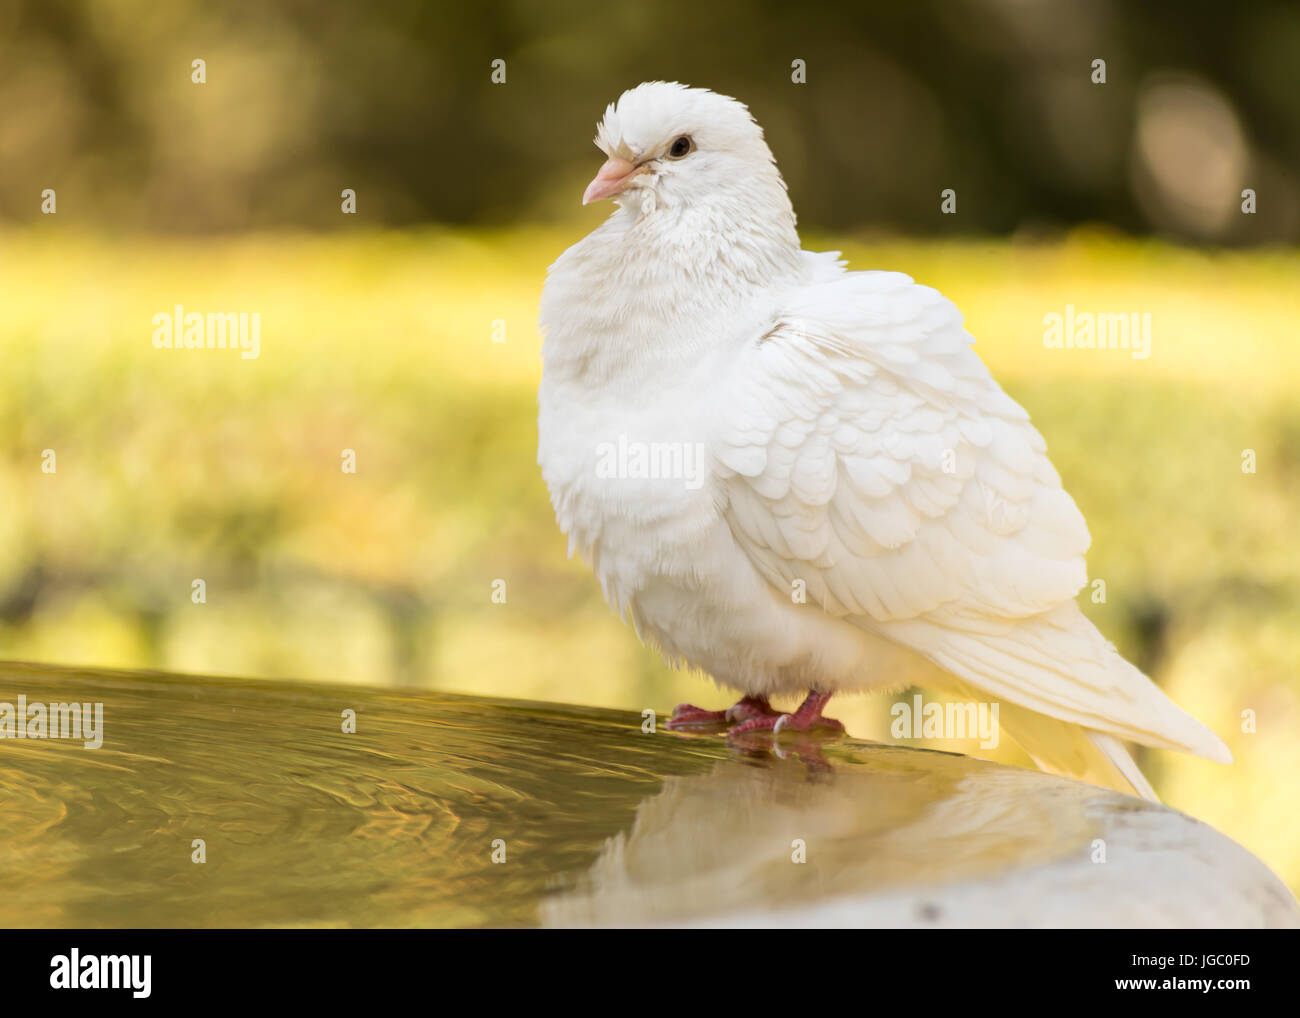 A white dove drinks and bathes at a fountain within the grounds of the Alcazar, Seville, Andalucia, Spain. Stock Photo